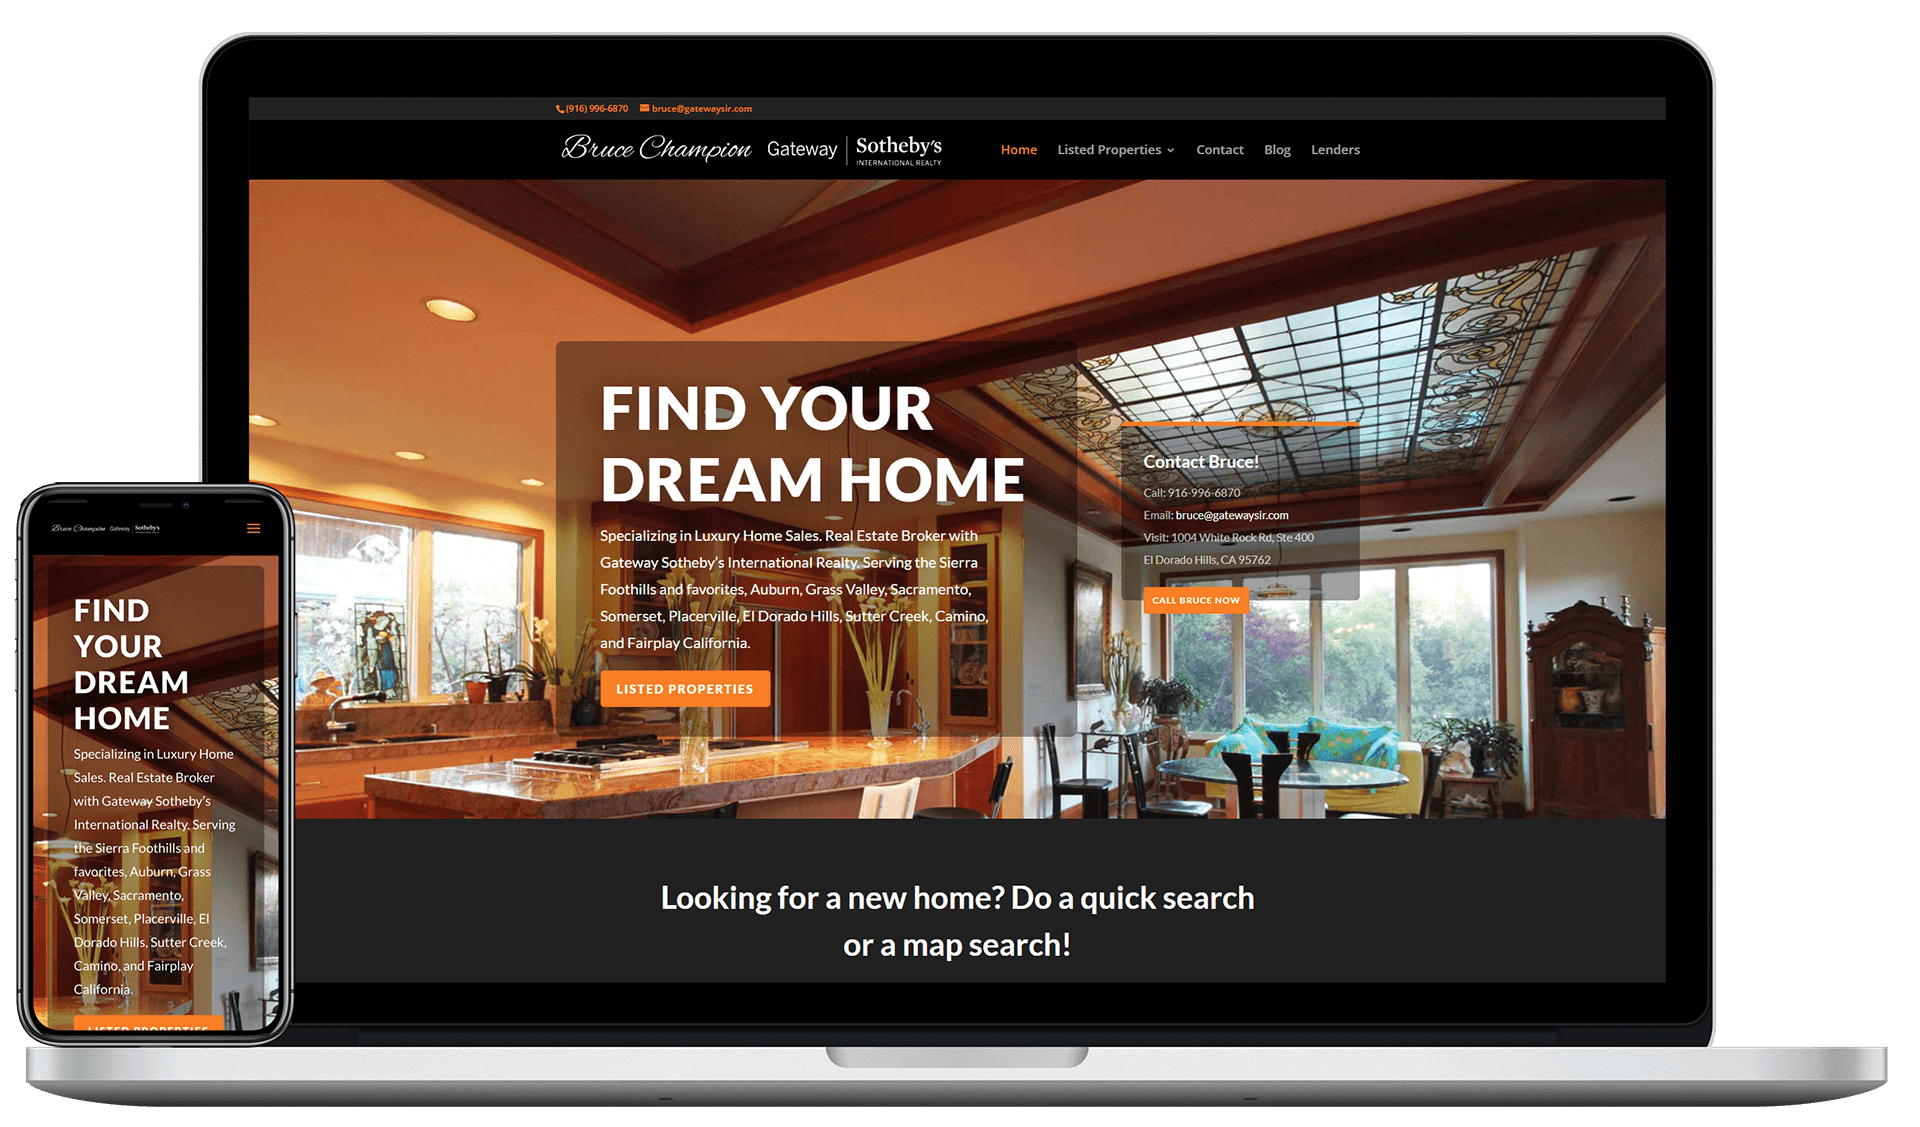 Blue Frog Web Design makes the Best Real Estate Websites! Are you a licensed Real Estate Broker who needs a modern website? Call us today!  #RealEstateWebsites #WordPress. #ResponsiveDesign. #SEO. #MobileFriendly. #Marketing. #GraphicDesign